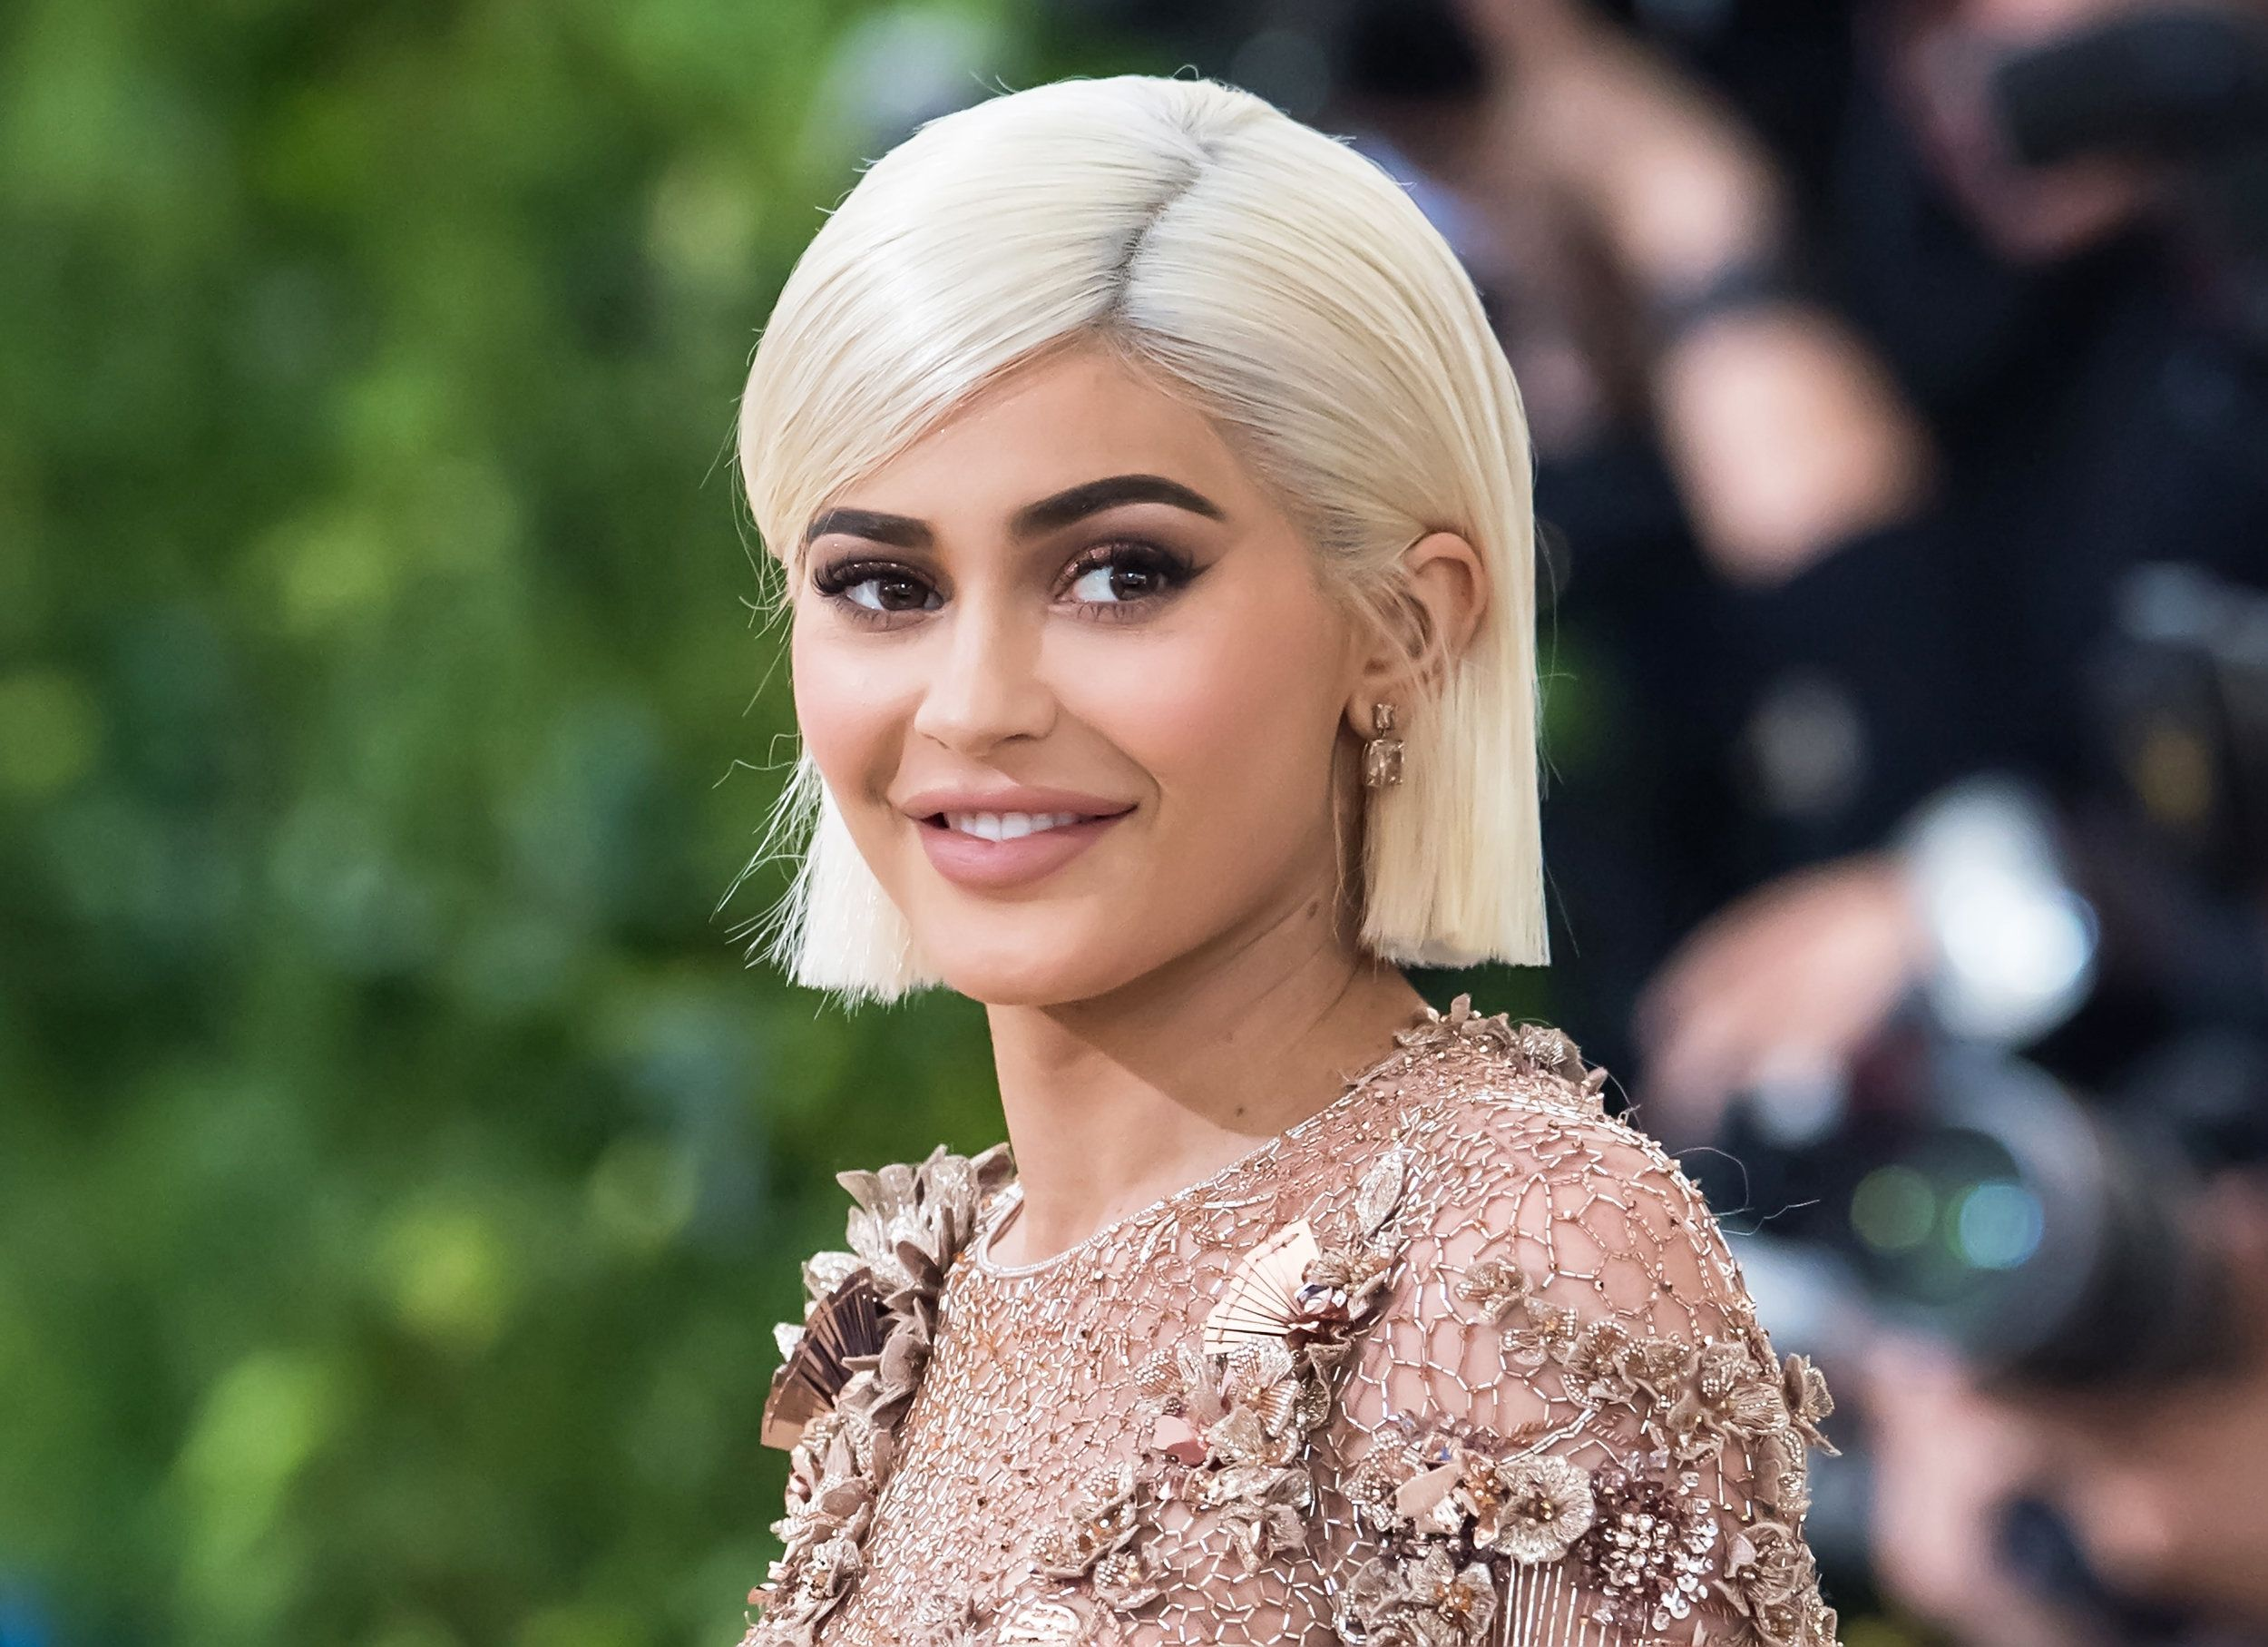 Kylie Jenner Spotted Out In Public For The First Time In